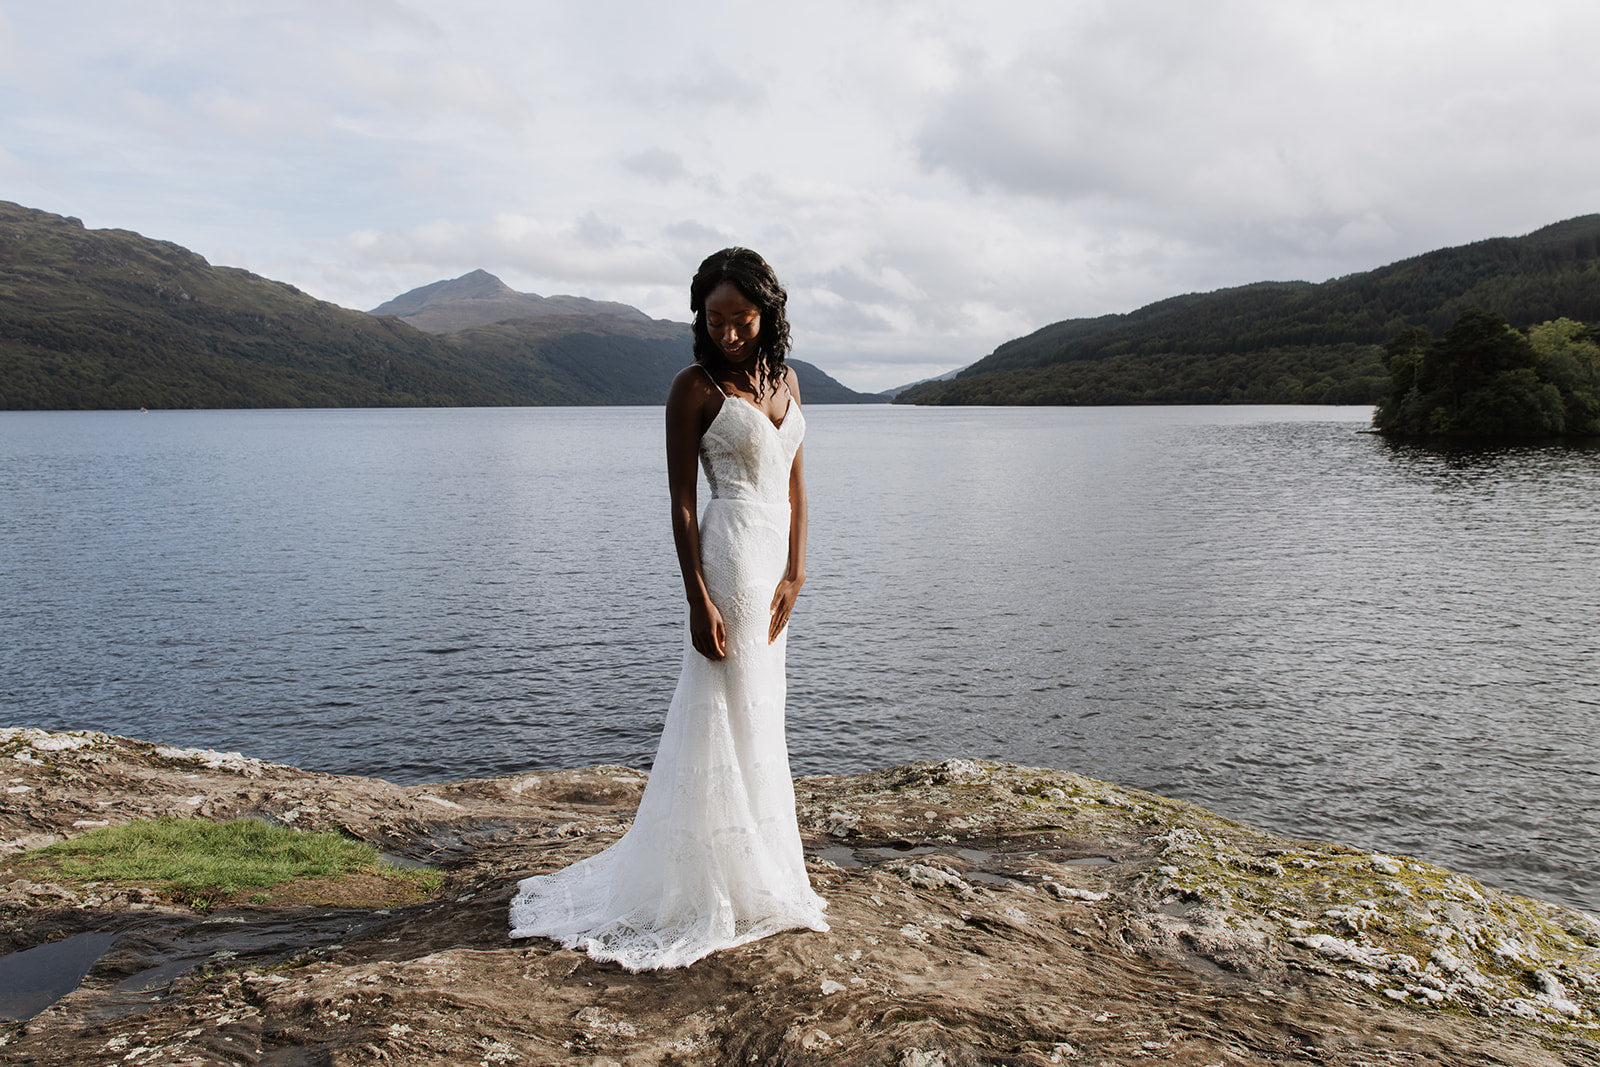 Wedding dress style shoot in Scotland